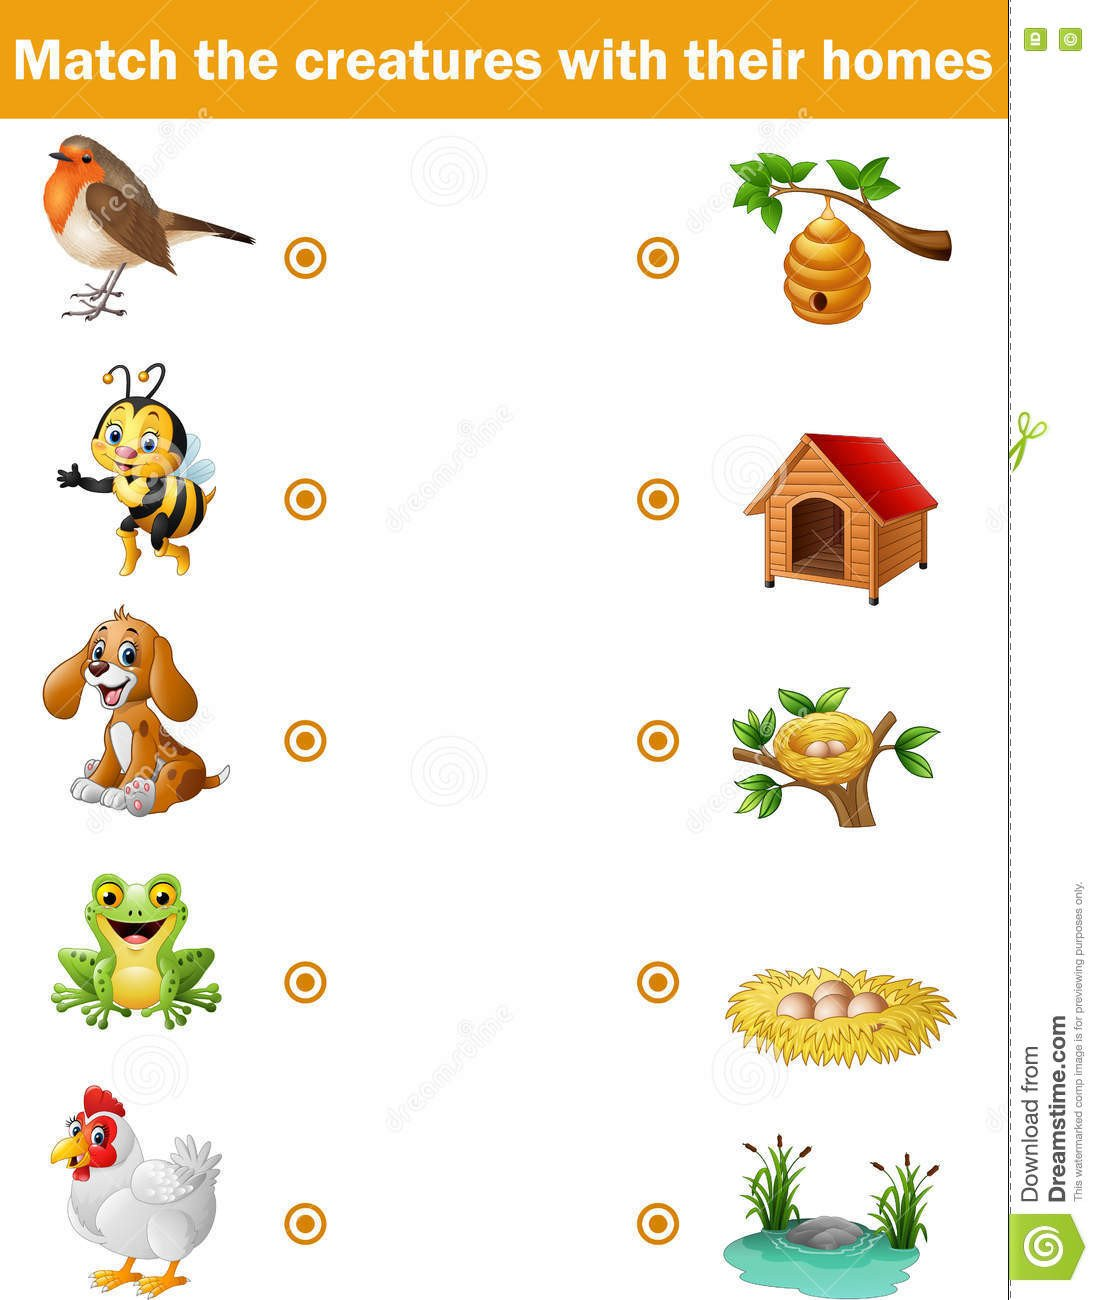 Animal Homes Worksheet Matching Game for Children Animals with their Homes Stock